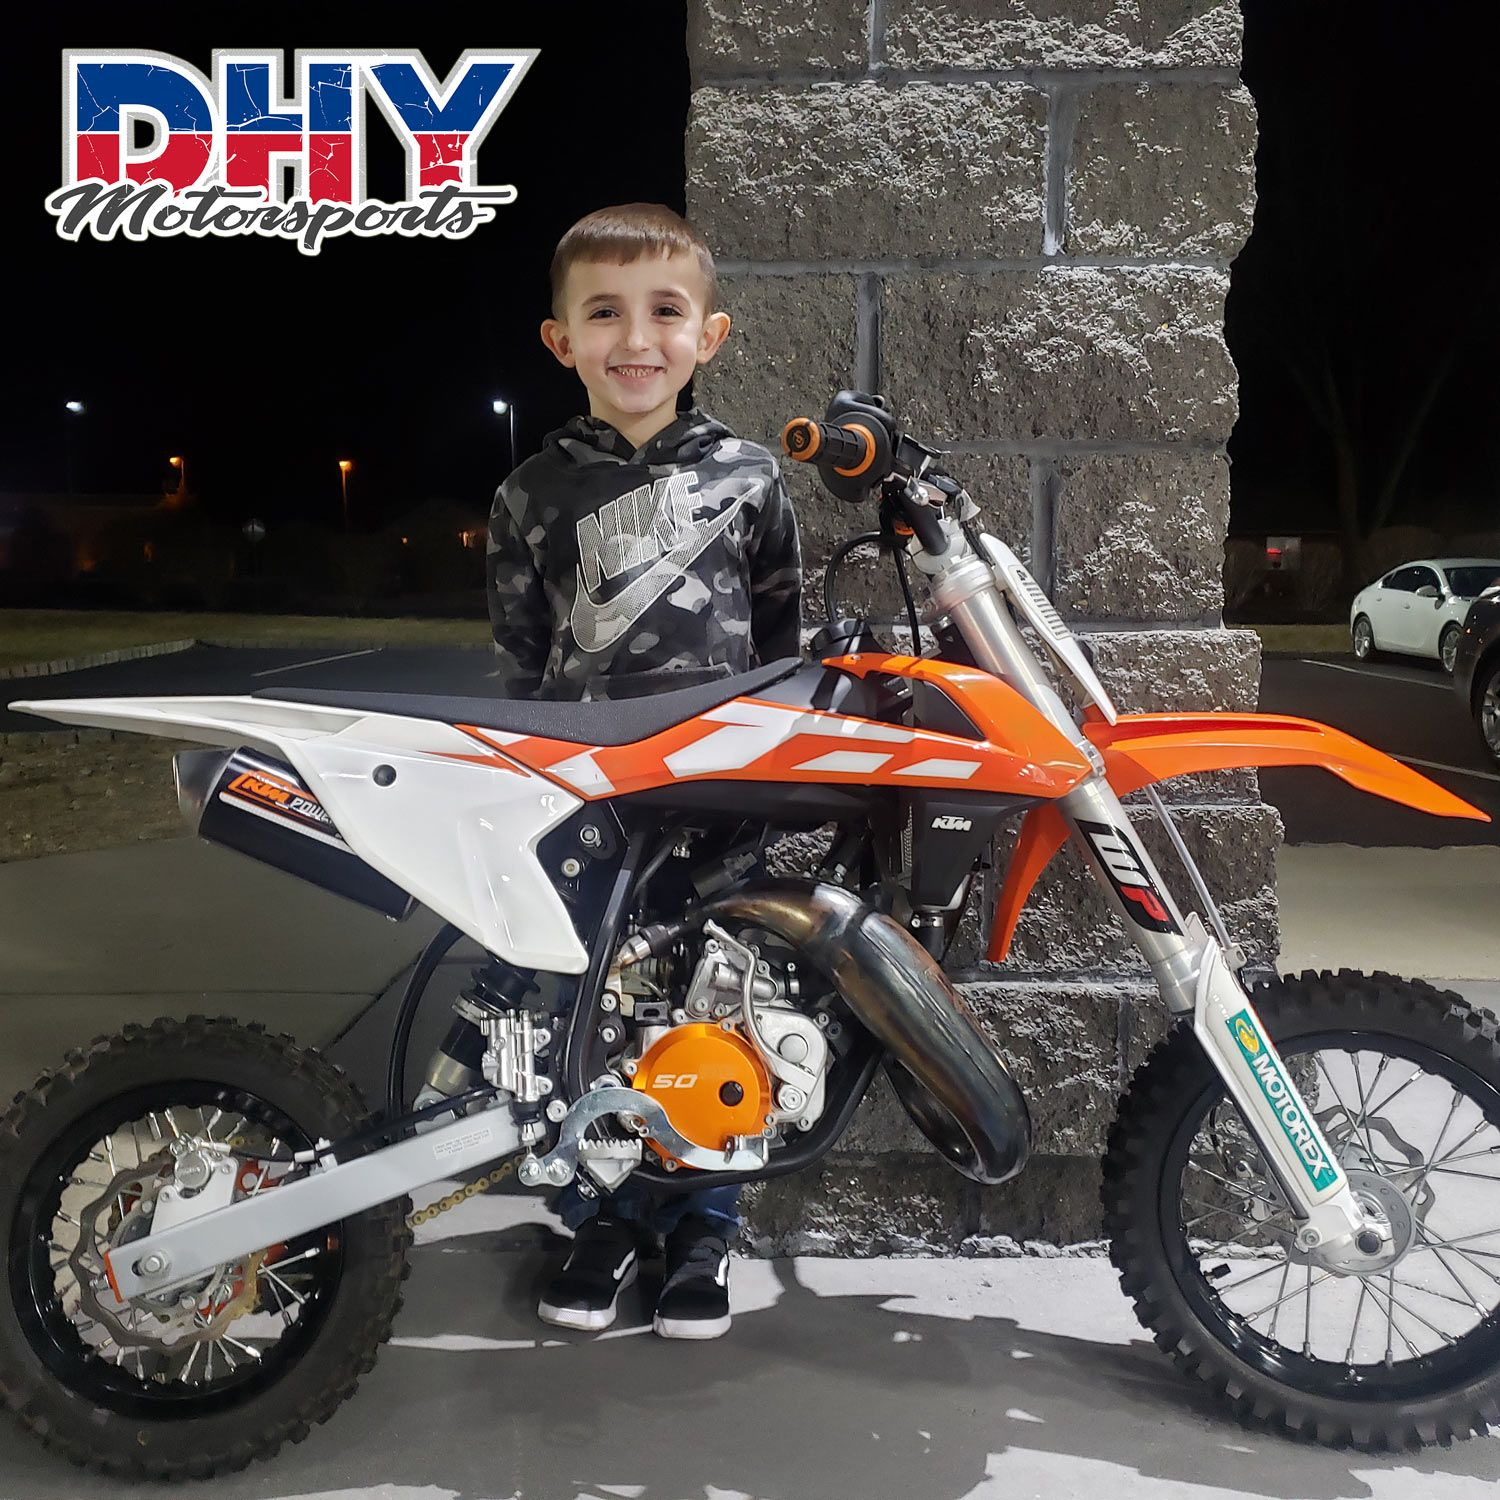 Congrats Sean On Your 2016 Ktm 50 Sxs With The Ability To Make Going Fast Fun Thank You For Making Your Purchase At Dhymo Used Motorcycles Ktm Motorcycle